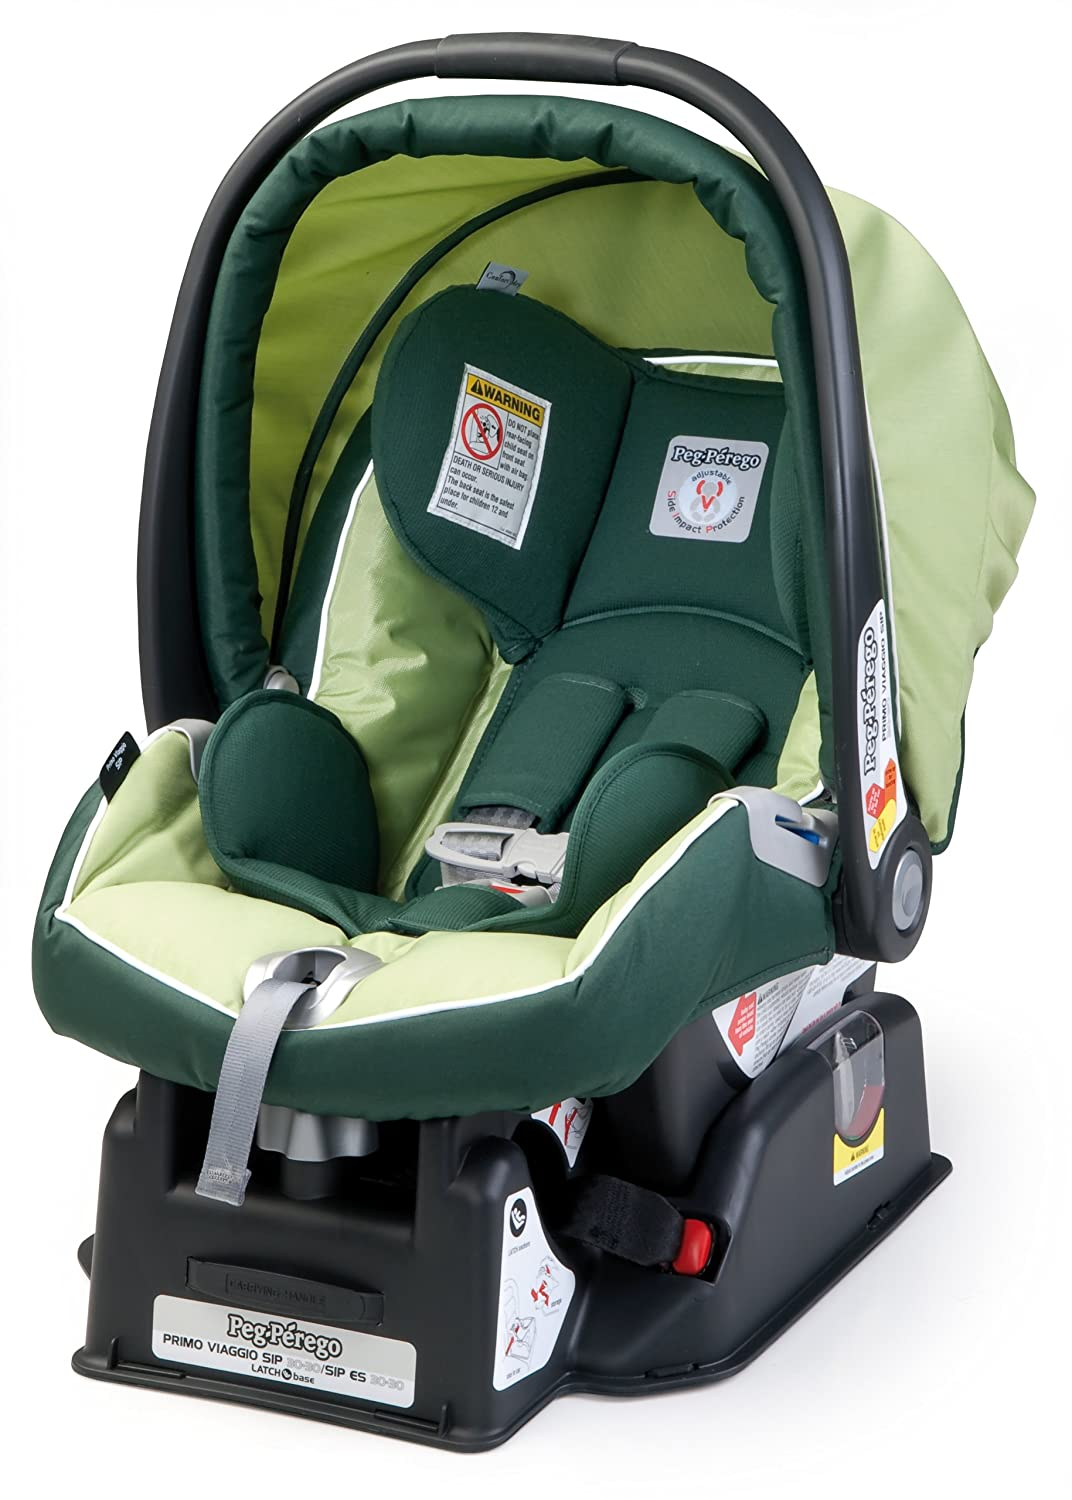 Amazon.com : Peg-Perego Primo Viaggio Infant Car Seat, Myrto ...